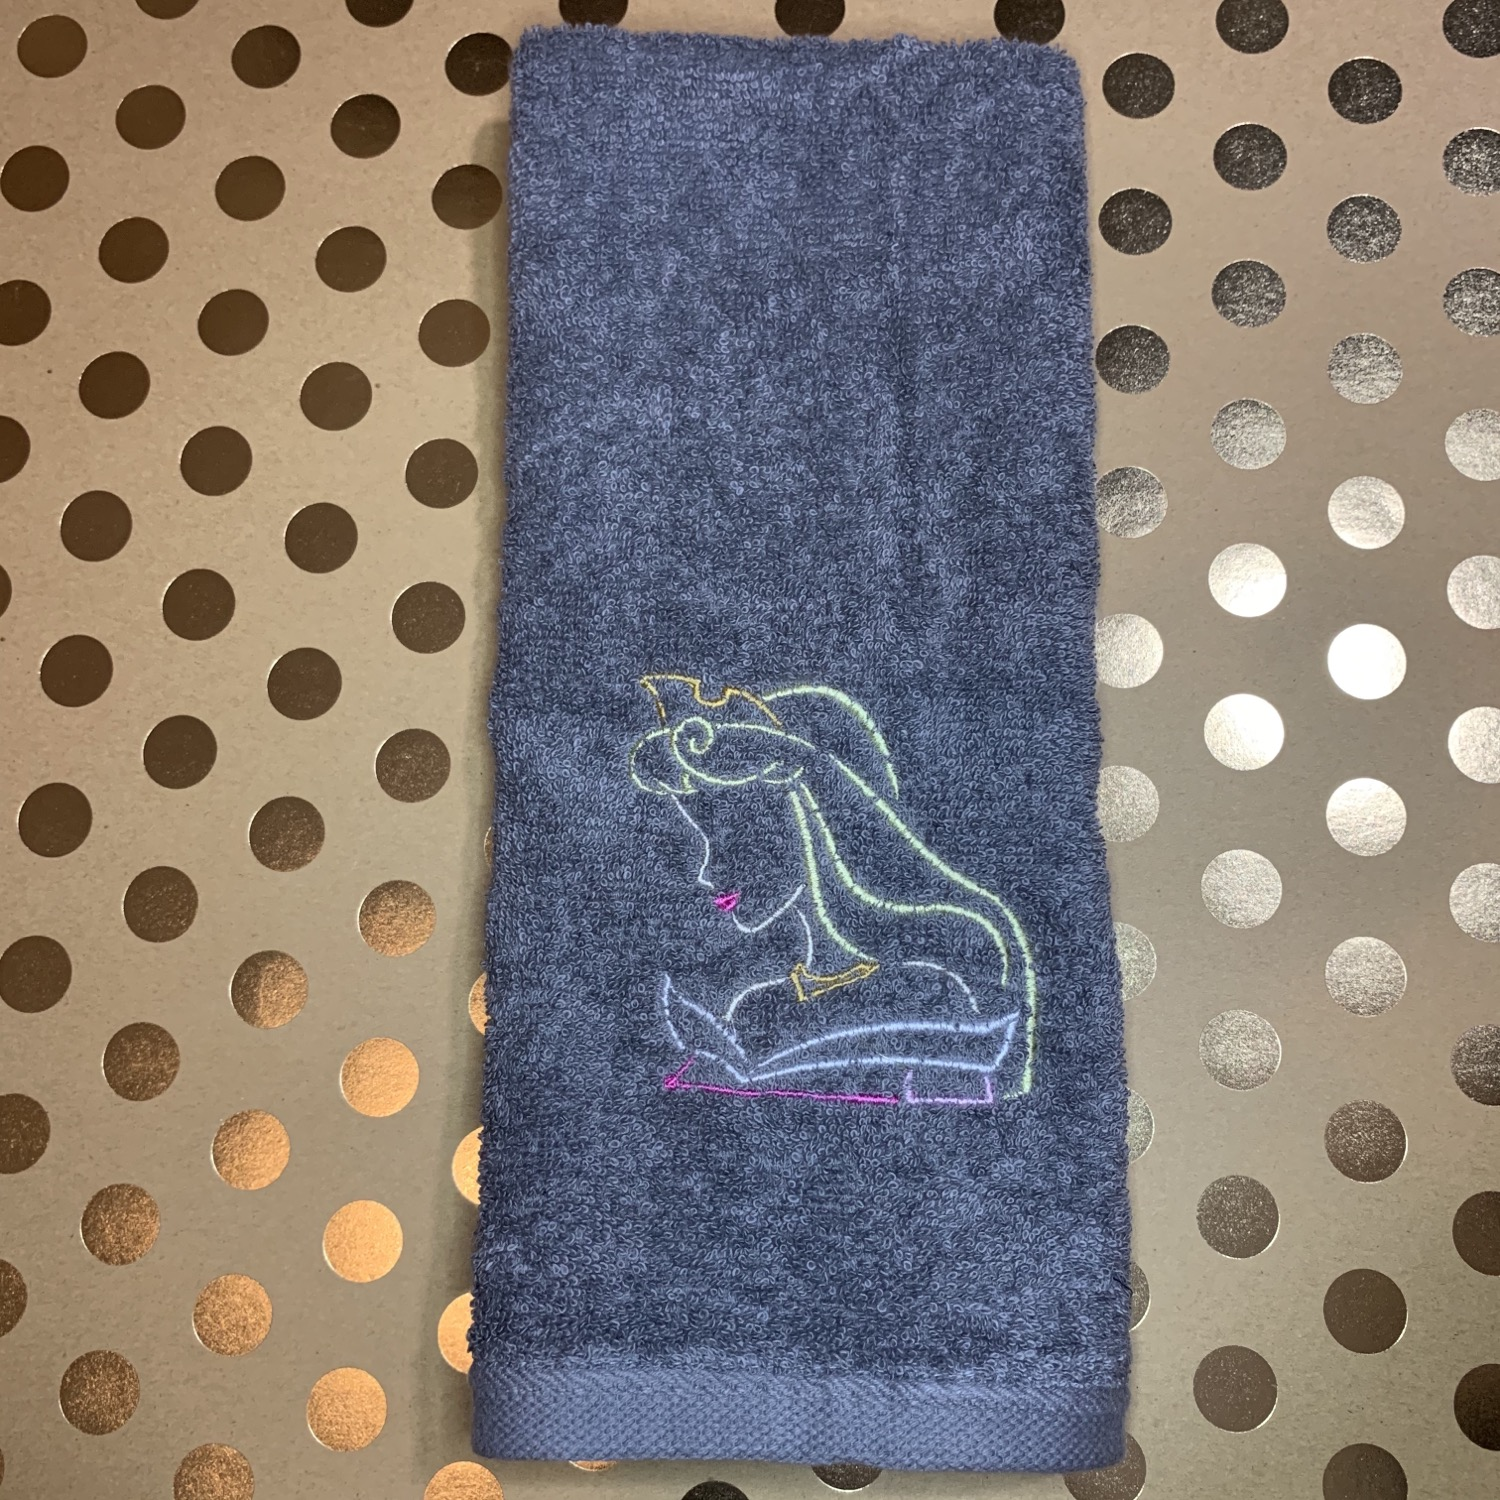 Aurora Side Profile embroidered towels, blanket, makeup bag